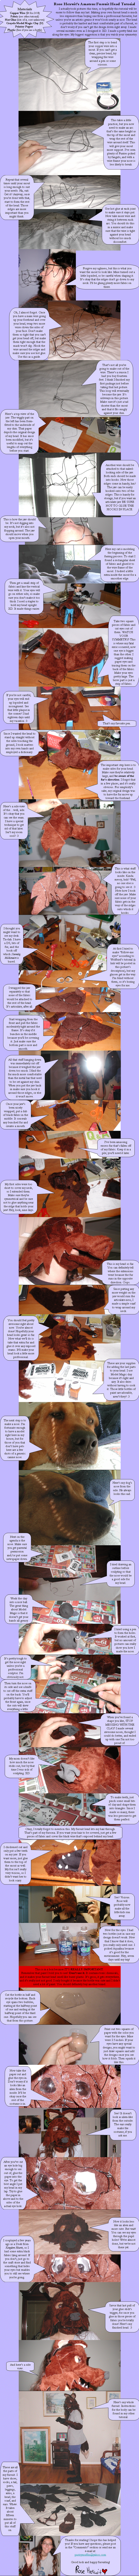 Fursuit Head Tutorial by RoseHexwit